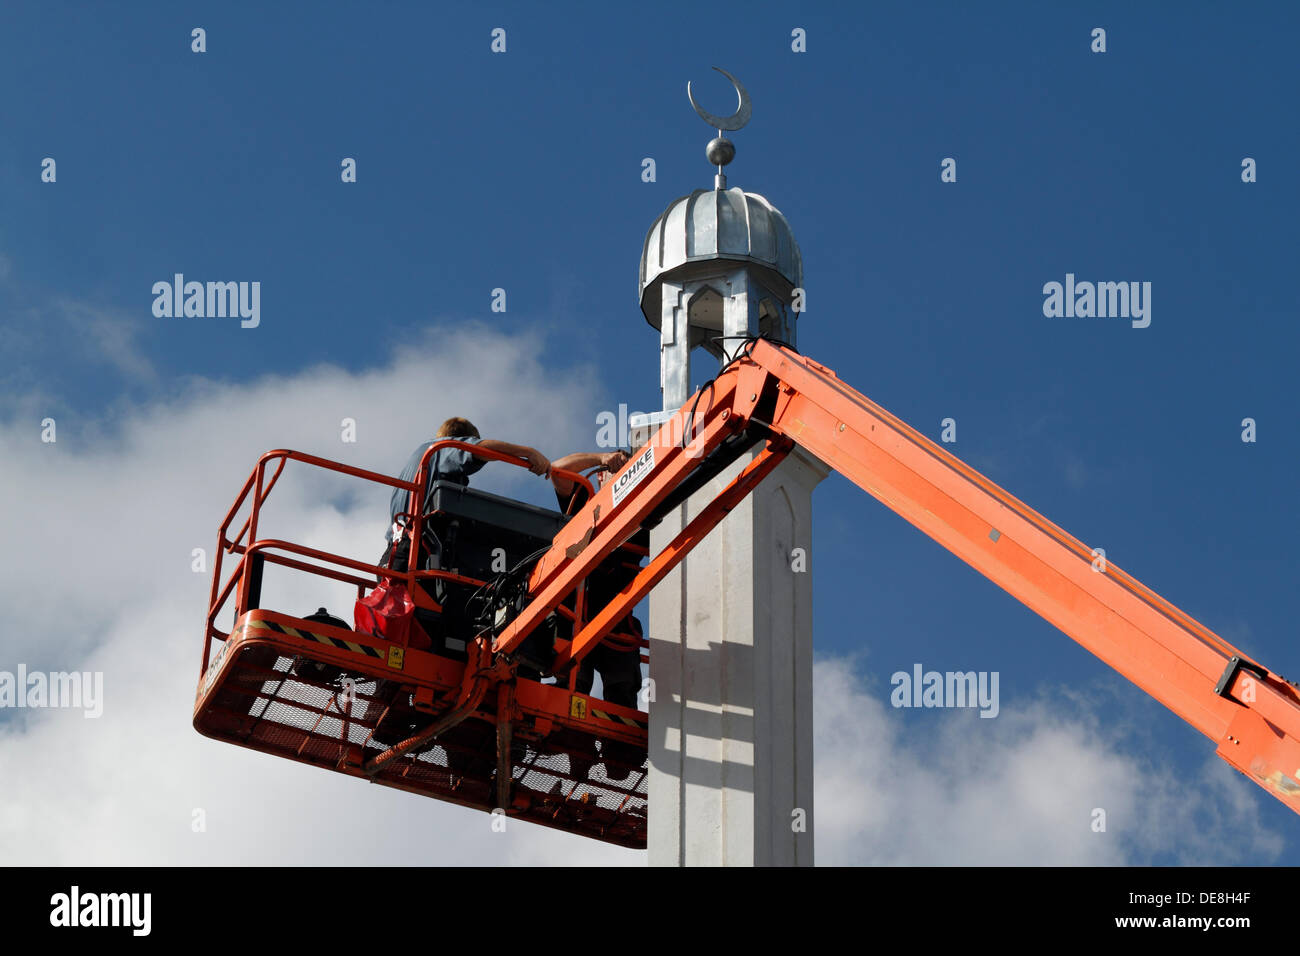 Copenhagen, Denmark, 13th Sept. 2013. Finishing touch to the 20m tall minaret on the nearly finished Grand Mosque - Stock Image